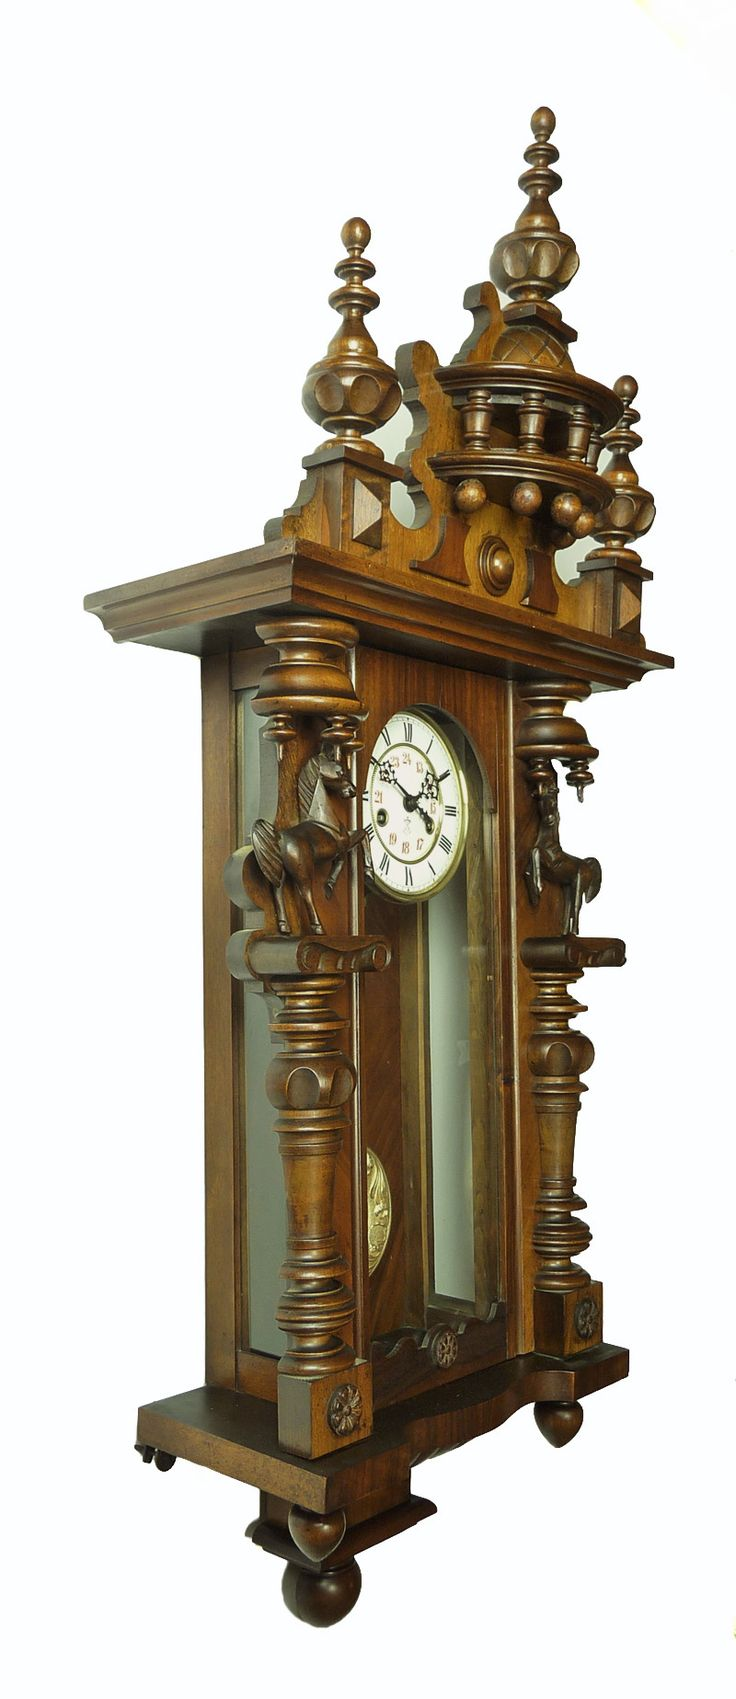 Best 25 grandfather clock repair ideas on pinterest grandfather rare gorgeous antique gustav becker wall clock at 1900 2 horses on the door amipublicfo Choice Image